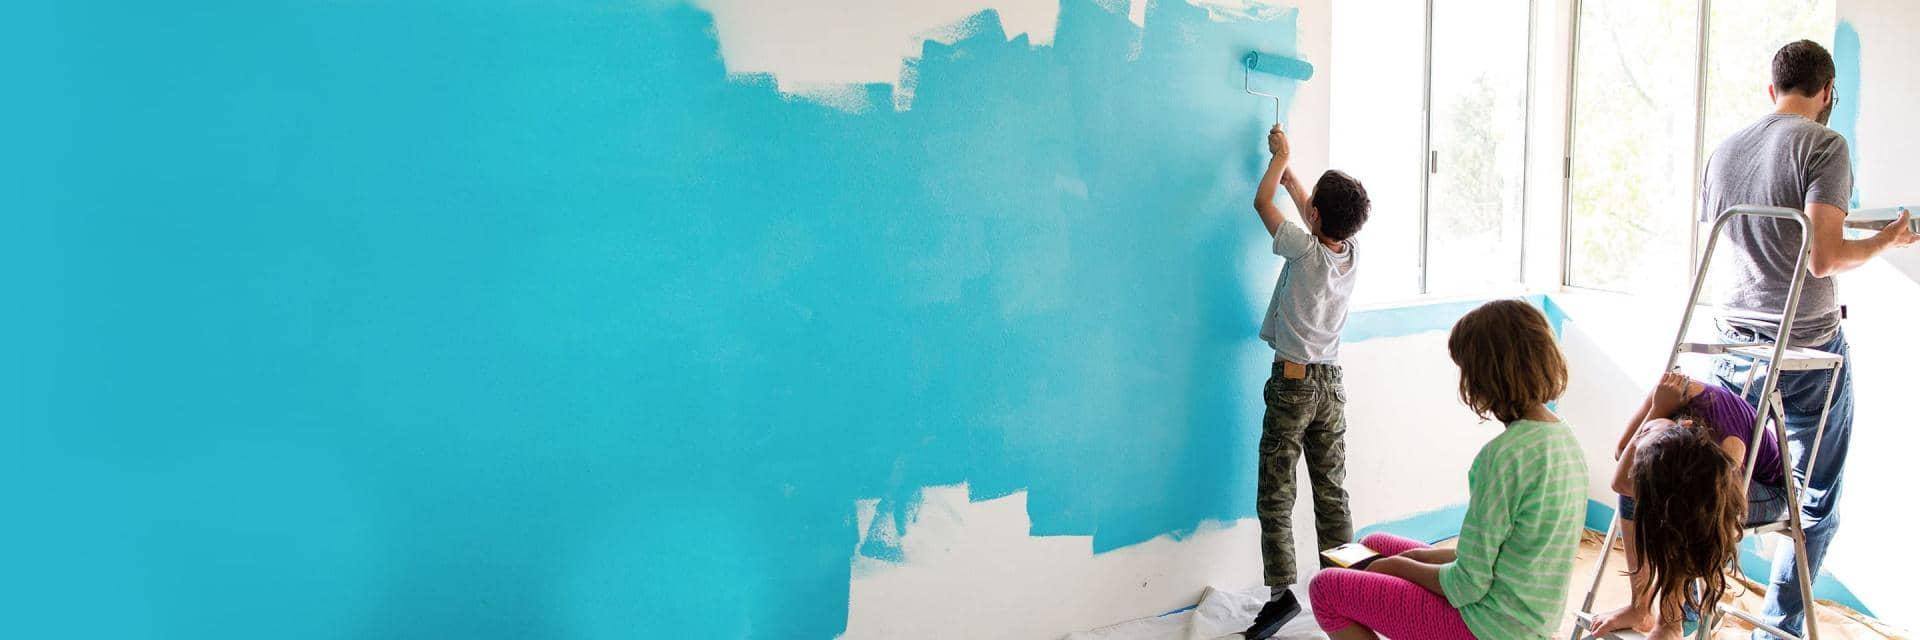 Improving your home | Barclays